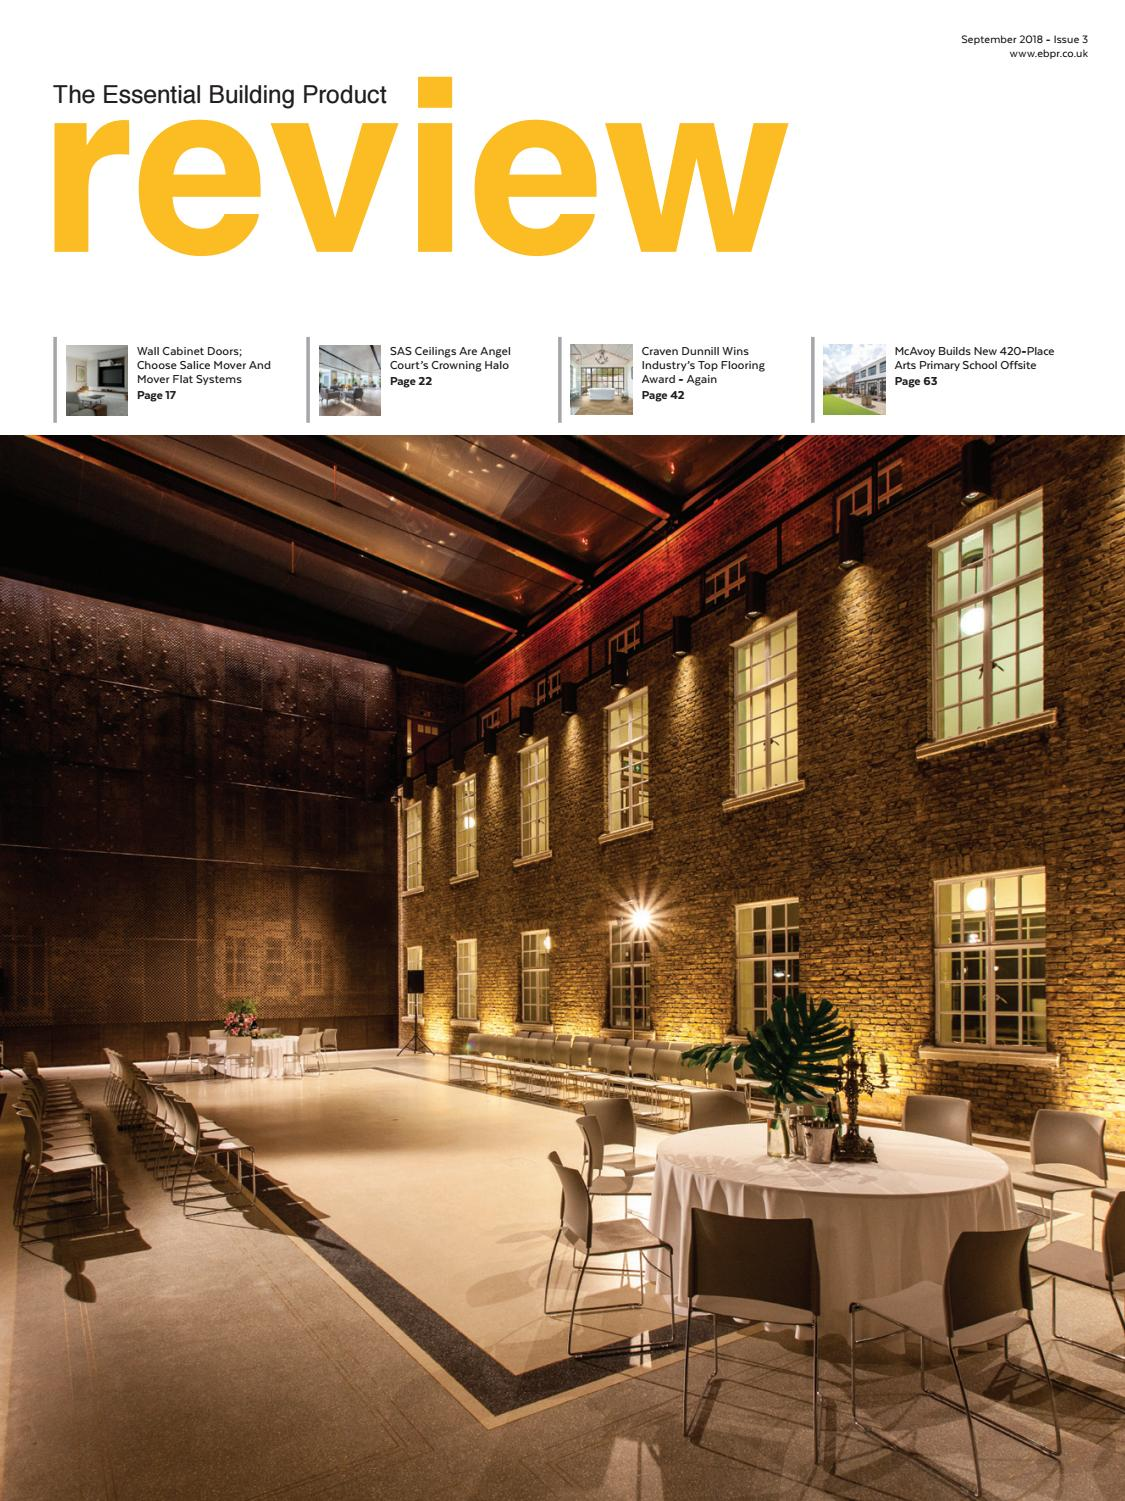 The Essential Building Product Review September 2018 Issue 3 by L2